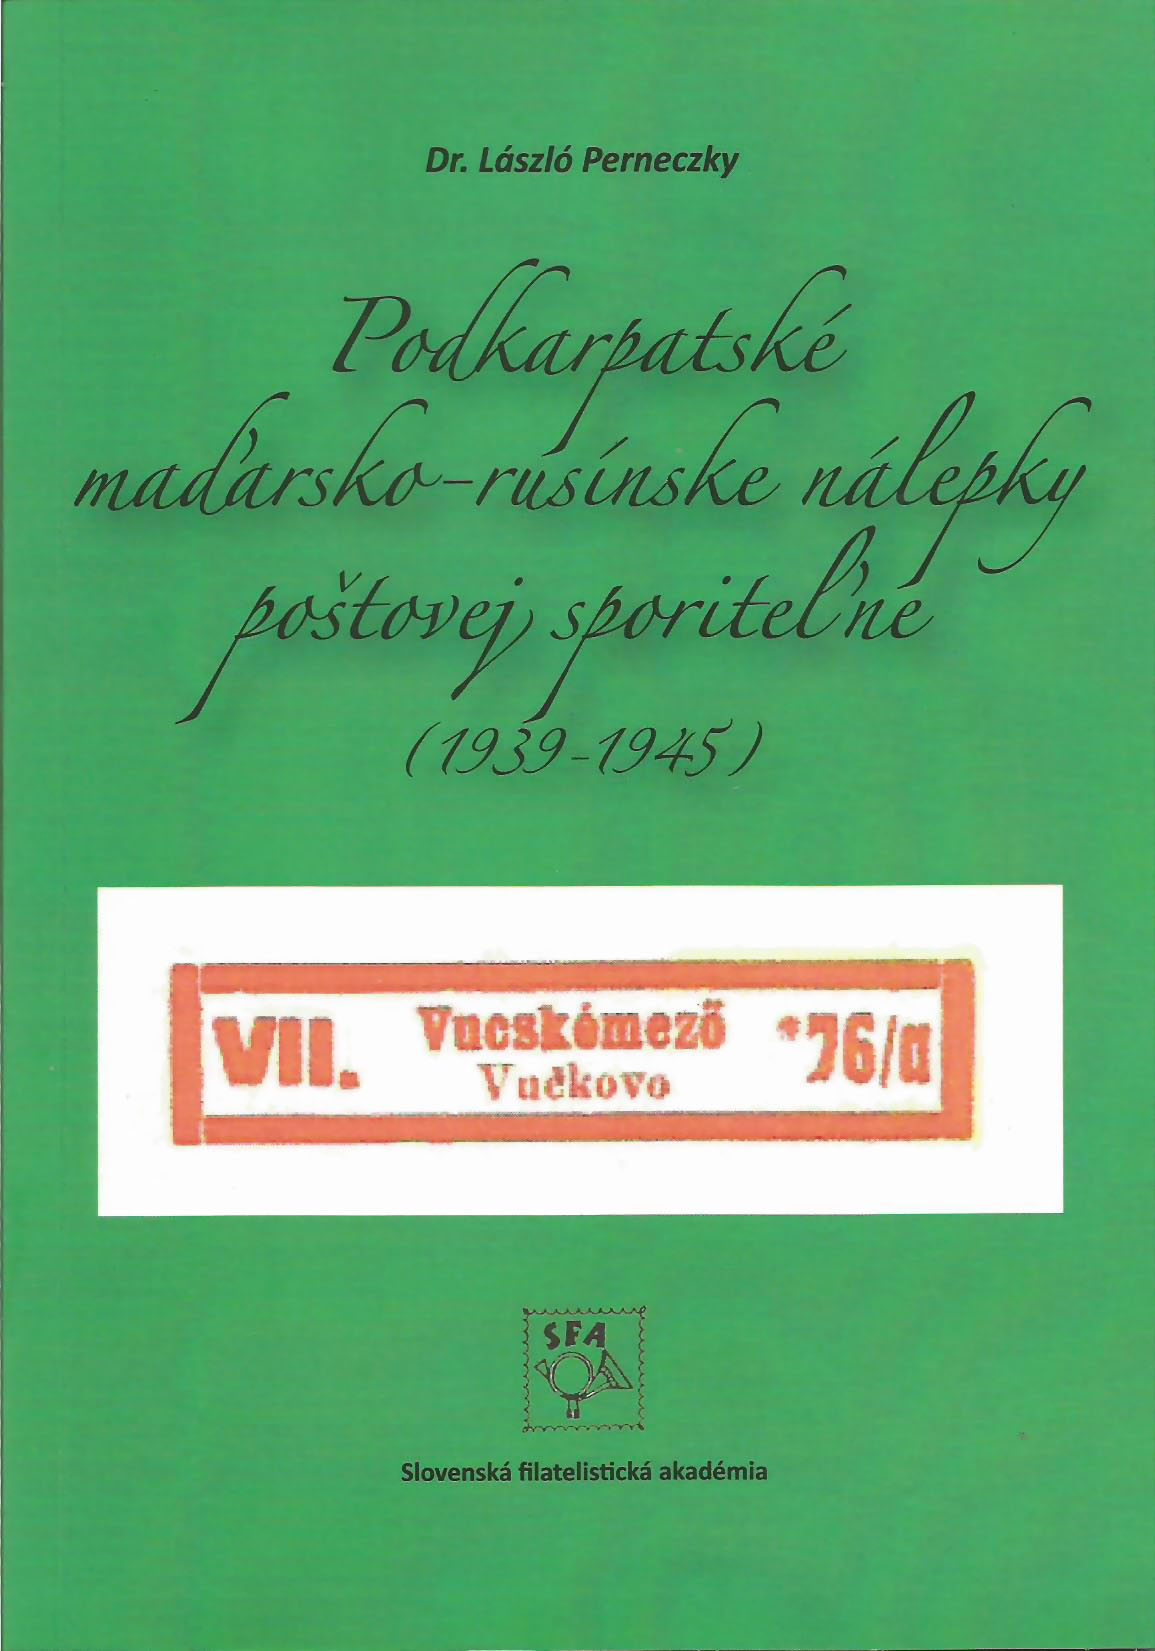 Philatelic literature Dr. László Perneczky: Podkarpatské maďarsko – rusínske nálepky poštovej sporiteľne (Transcarpathian Hungarian - Ruthenian labels of postal savings bank) (1939 -1945) (book review)